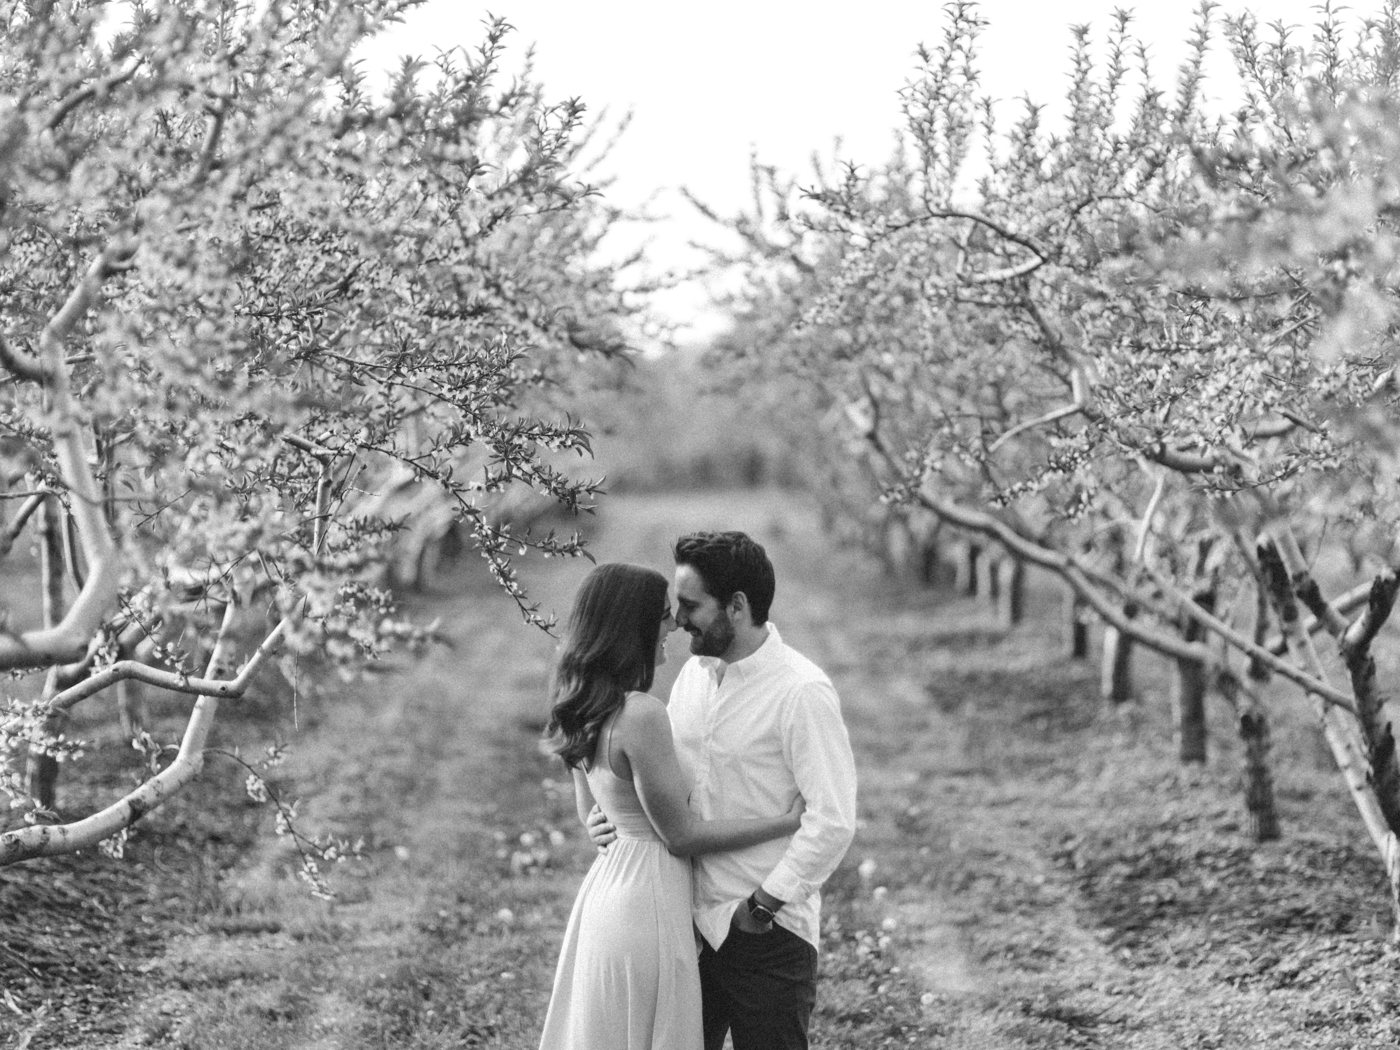 Chris & Heather's Engagement Session in Vineland Ontario Spring Blossoms Trees by Hush Hush Photography & Film Aidan Hennebry - 15.jpg